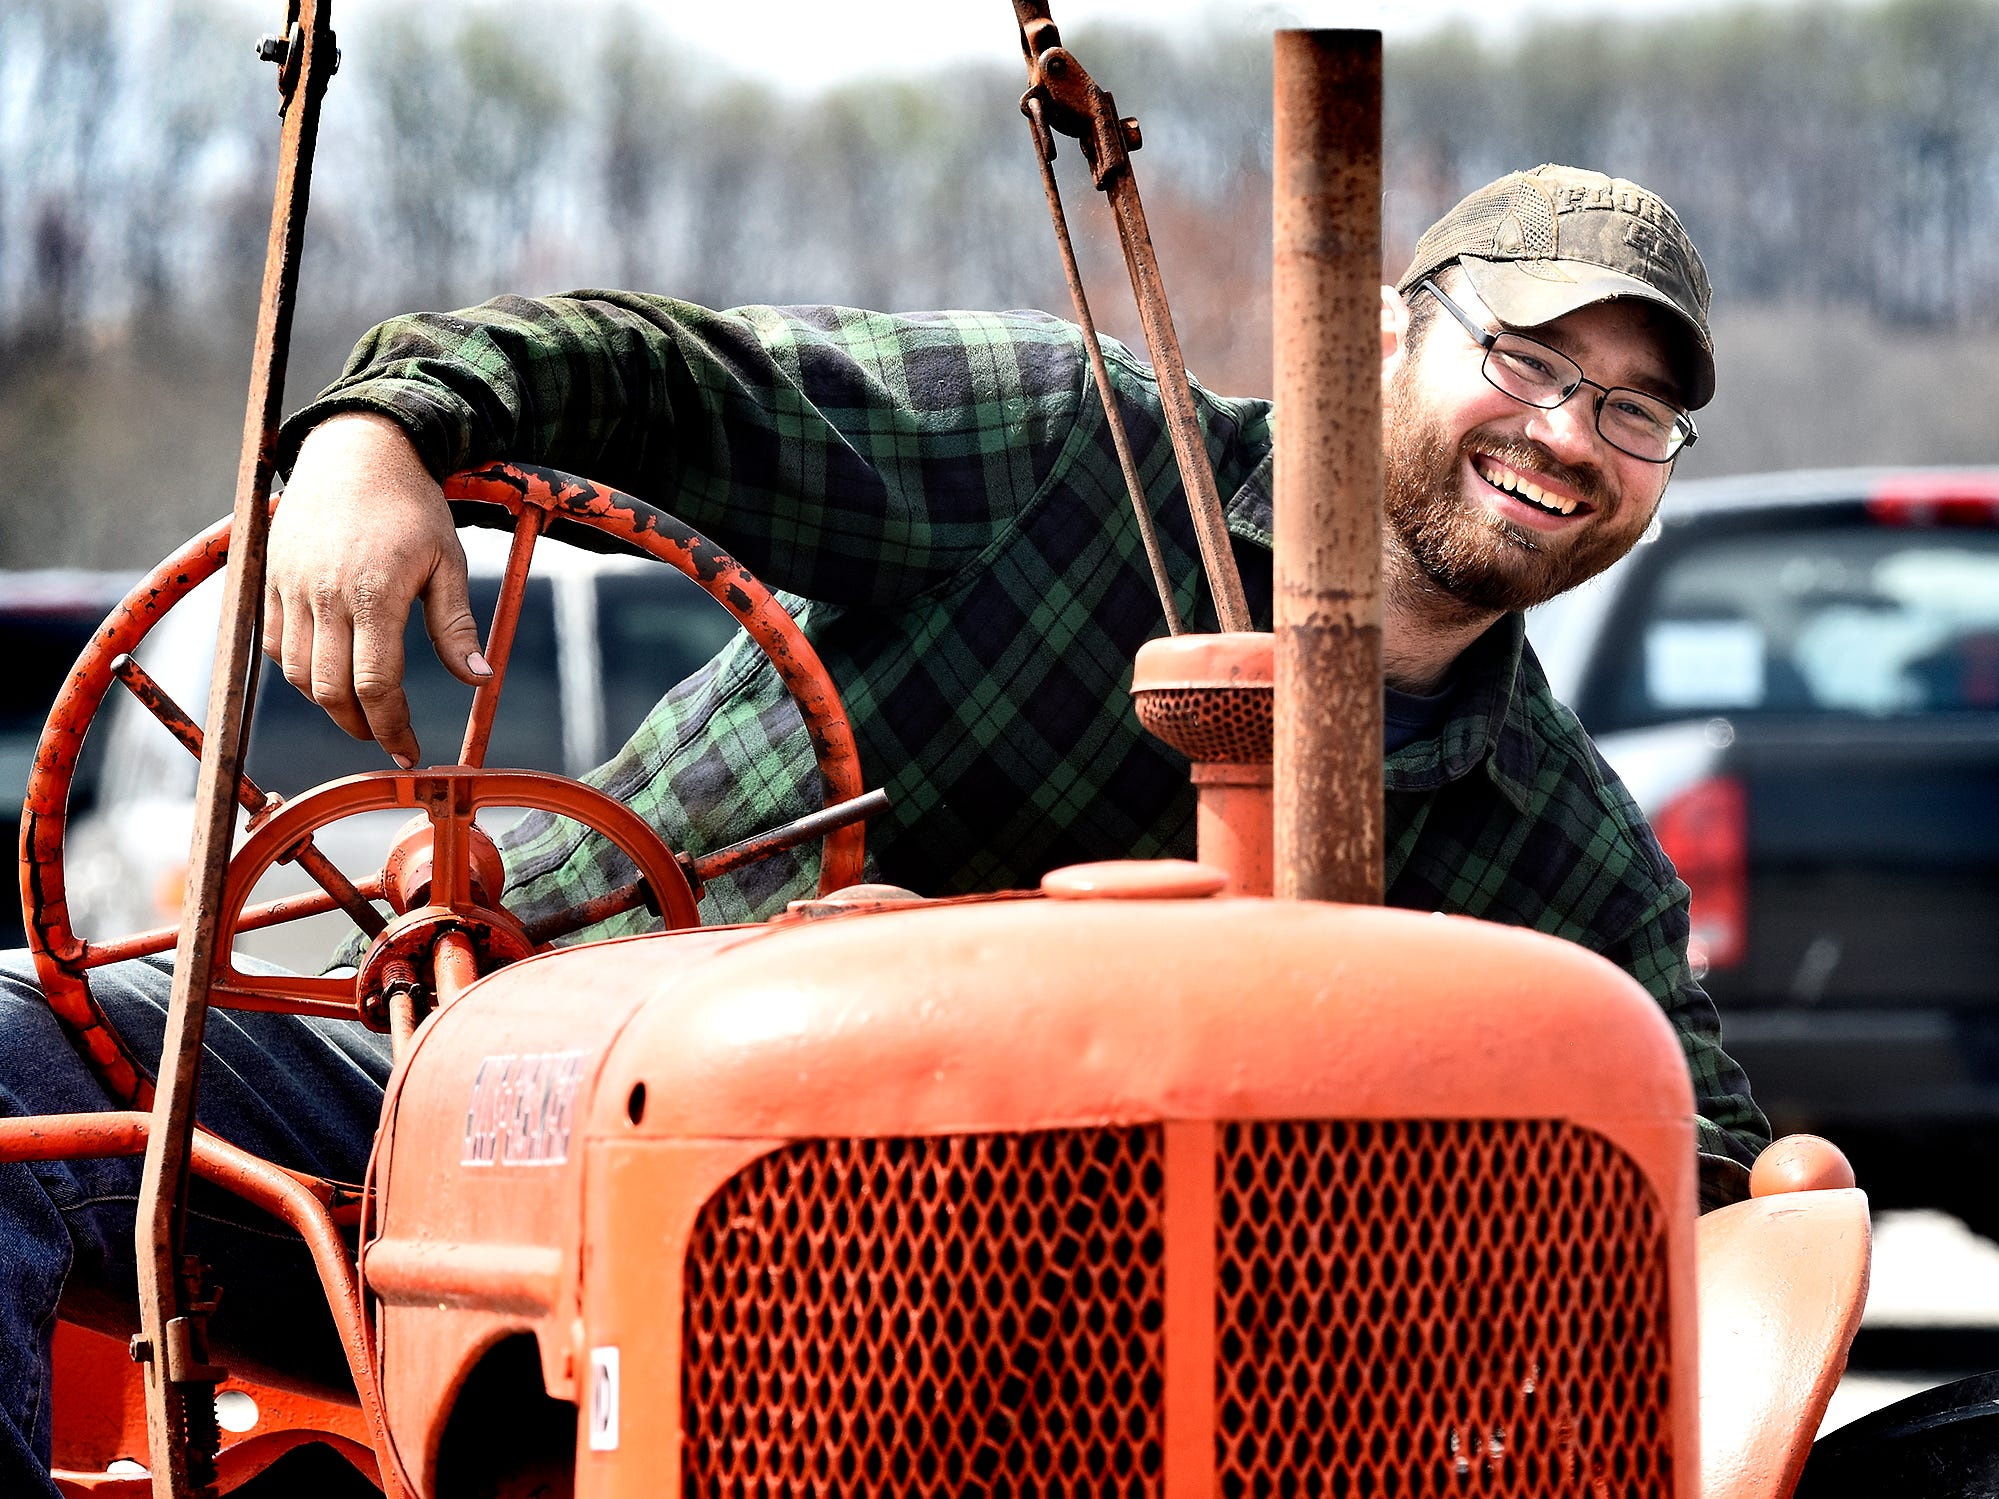 Spring Grove Area High School 2016 graduate Landon Heiner mans a classic tractor during the district's 6th Annual Rollin' Tractor Show on Thursday, April 11, 2019, presented by the Future Farmers Club. Alumni and area residents brought farm equipment to display with the goal of acquainting students with the agriculture industry. The show, which included a parade of equipment, visited the intermediate and elementary schools. Bill Kalina photo